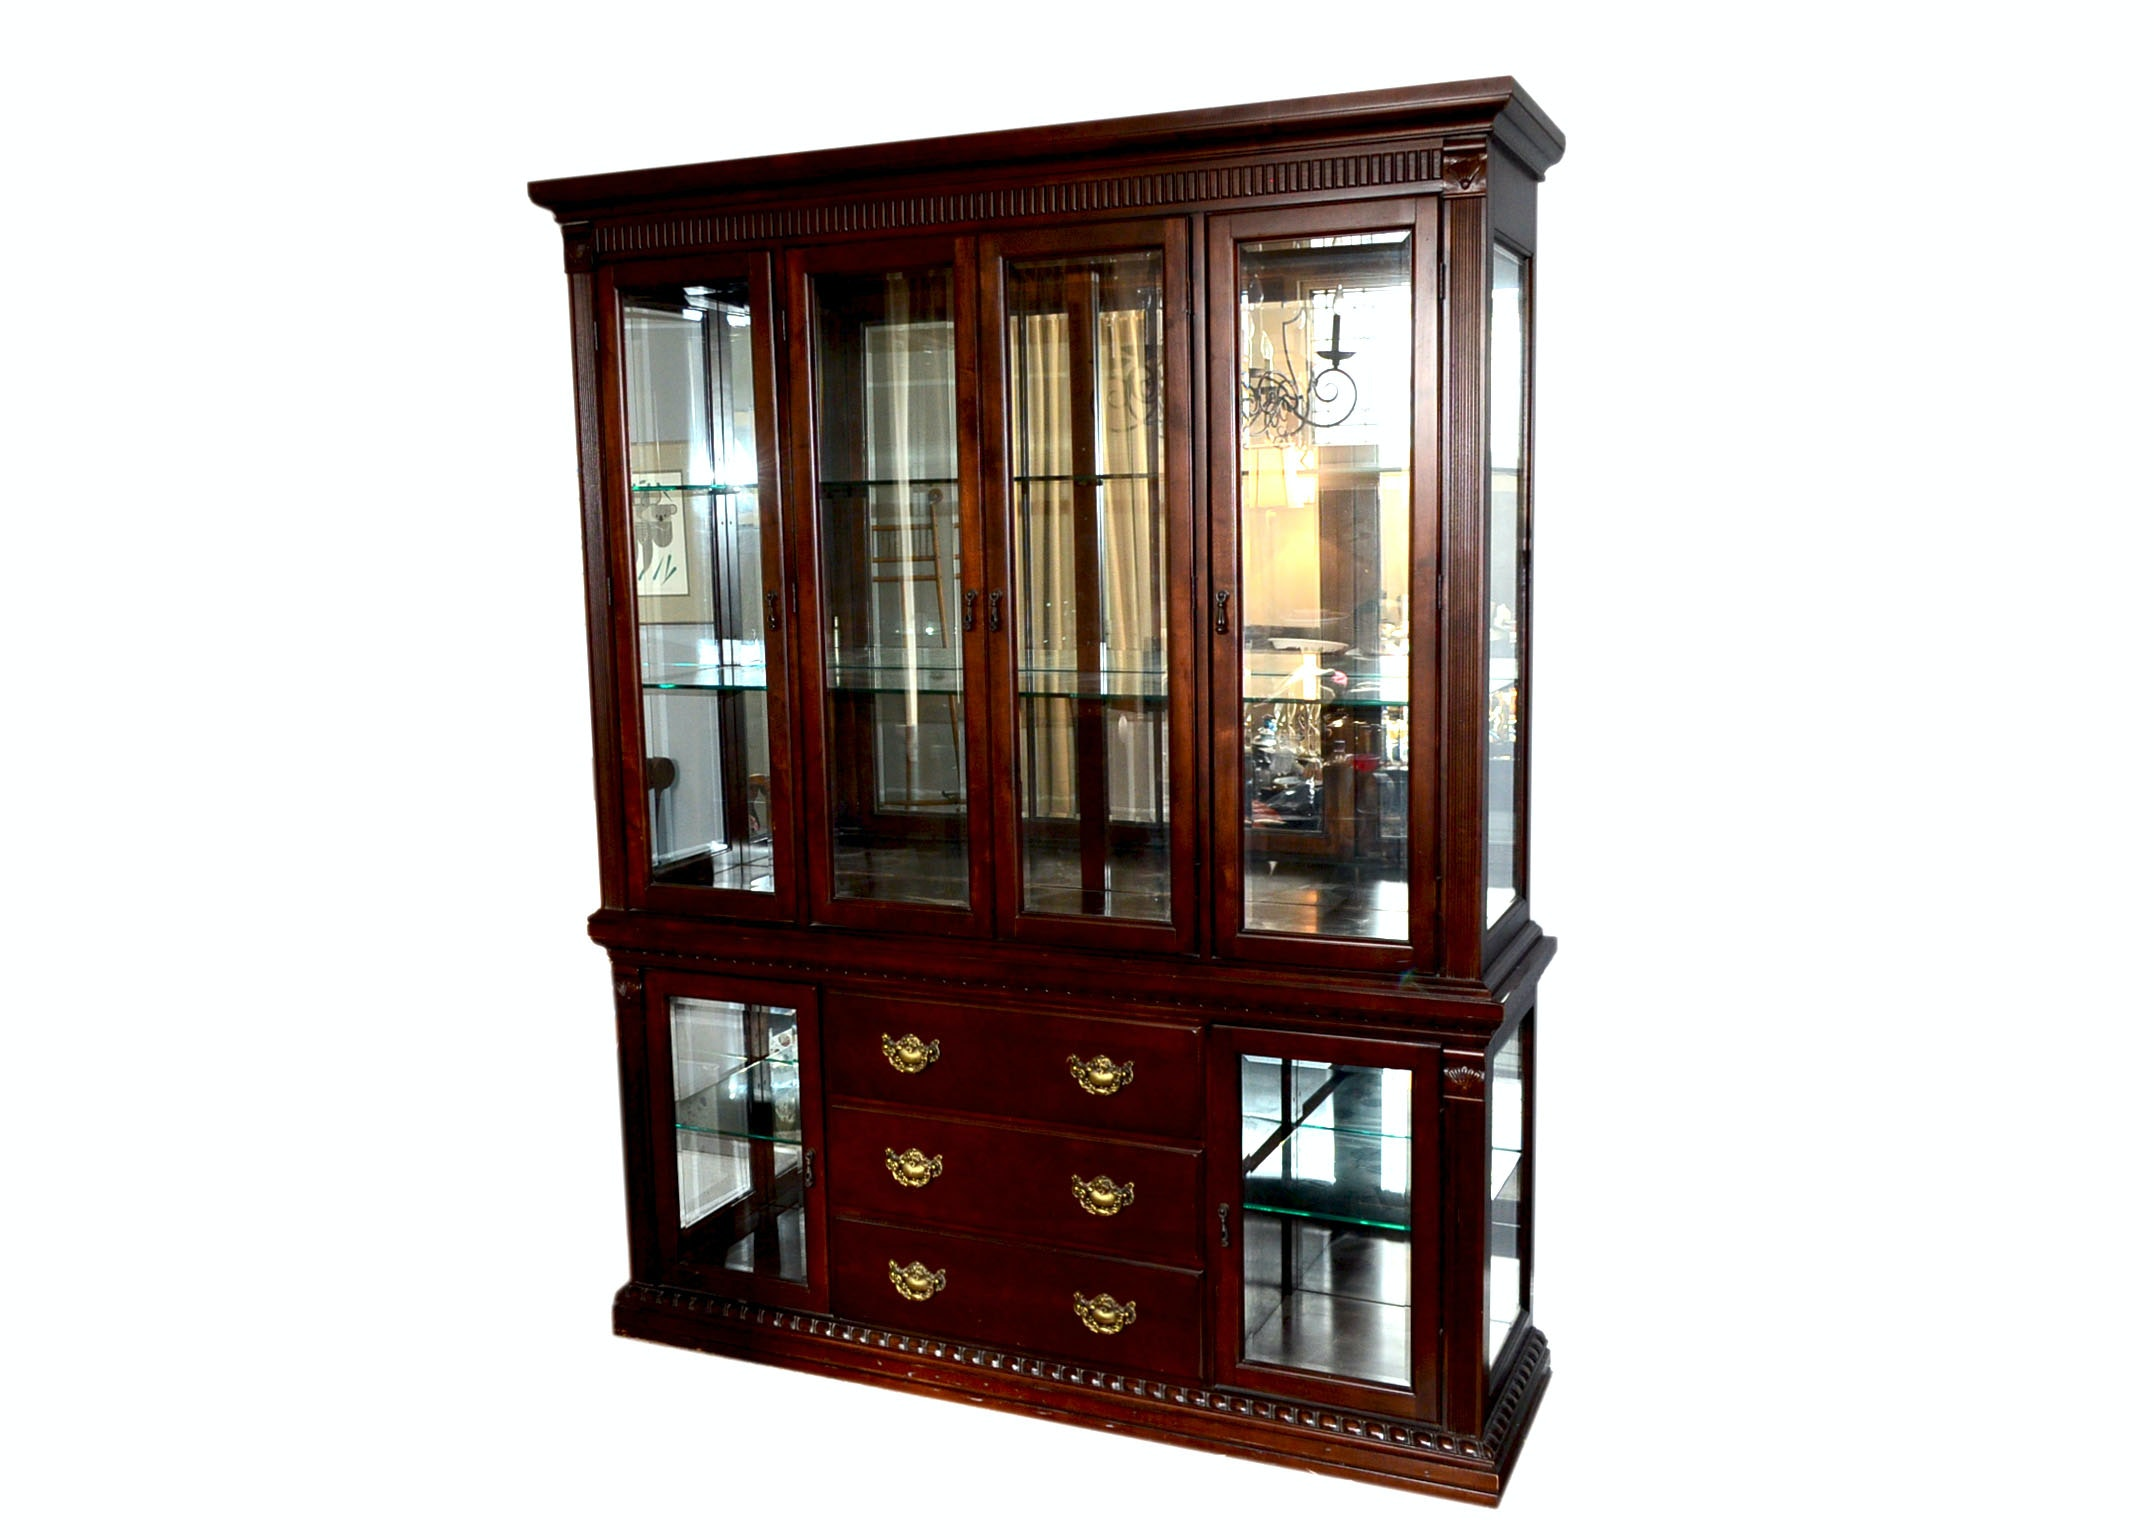 Heirloom Traditions Mahogany China Cabinet